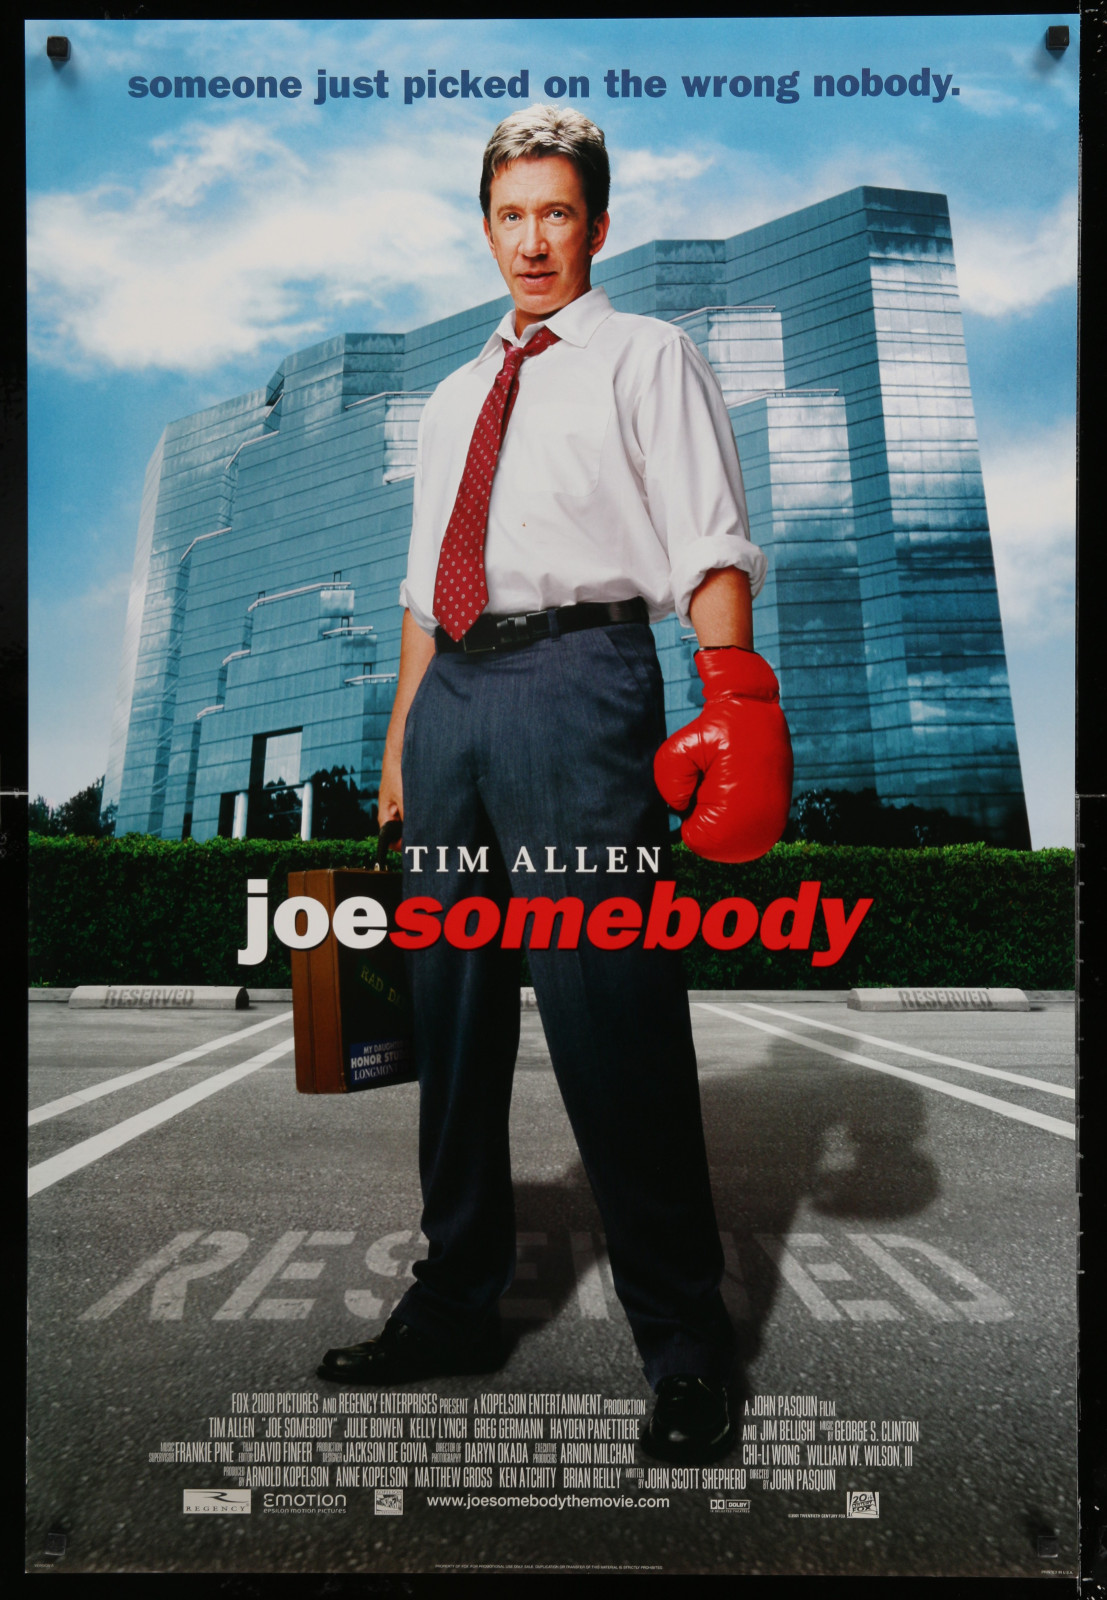 Joe Somebody 2A438 A Part Of A Lot 18 Unfolded Double-Sided 27X40 Mostly Comedy One-Sheets '90S-00S Great Movie Images!